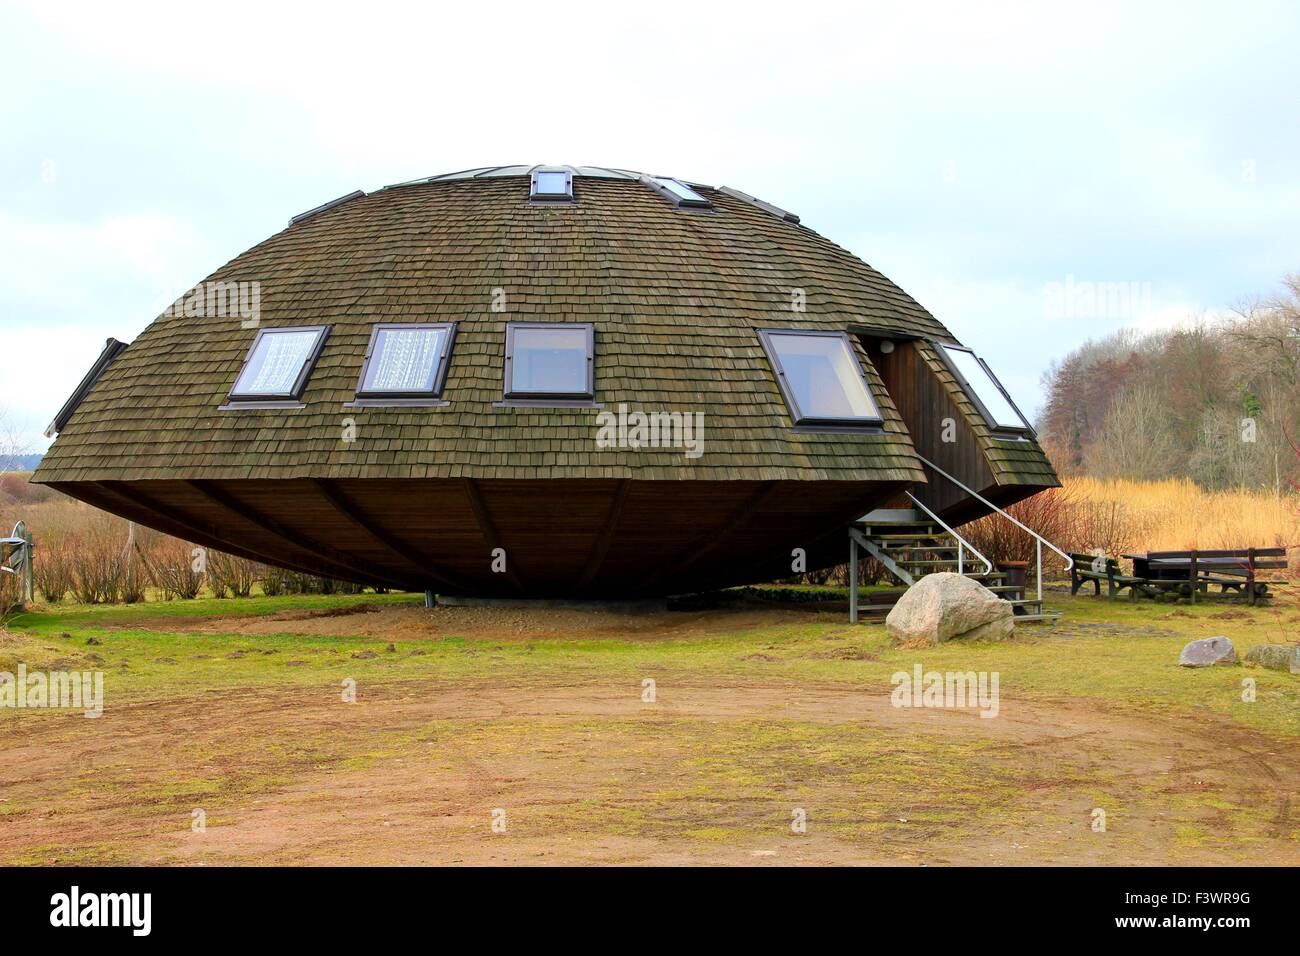 Ufo House In Wulkow